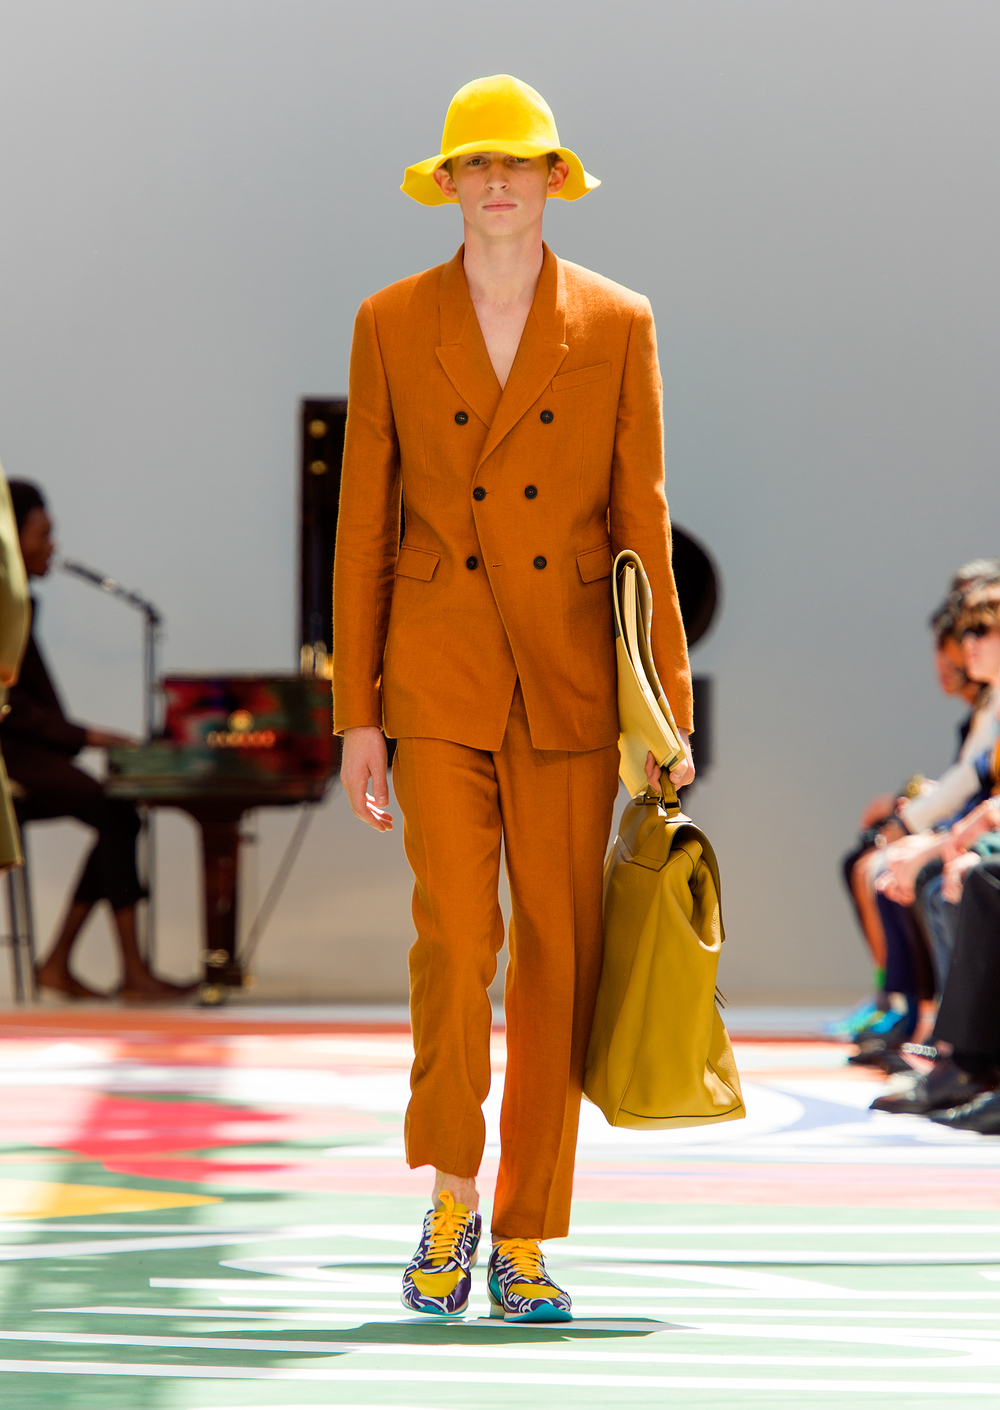 Burberry Prorsum Menswear Spring Summer 2015 Collection - Look 31.jpg